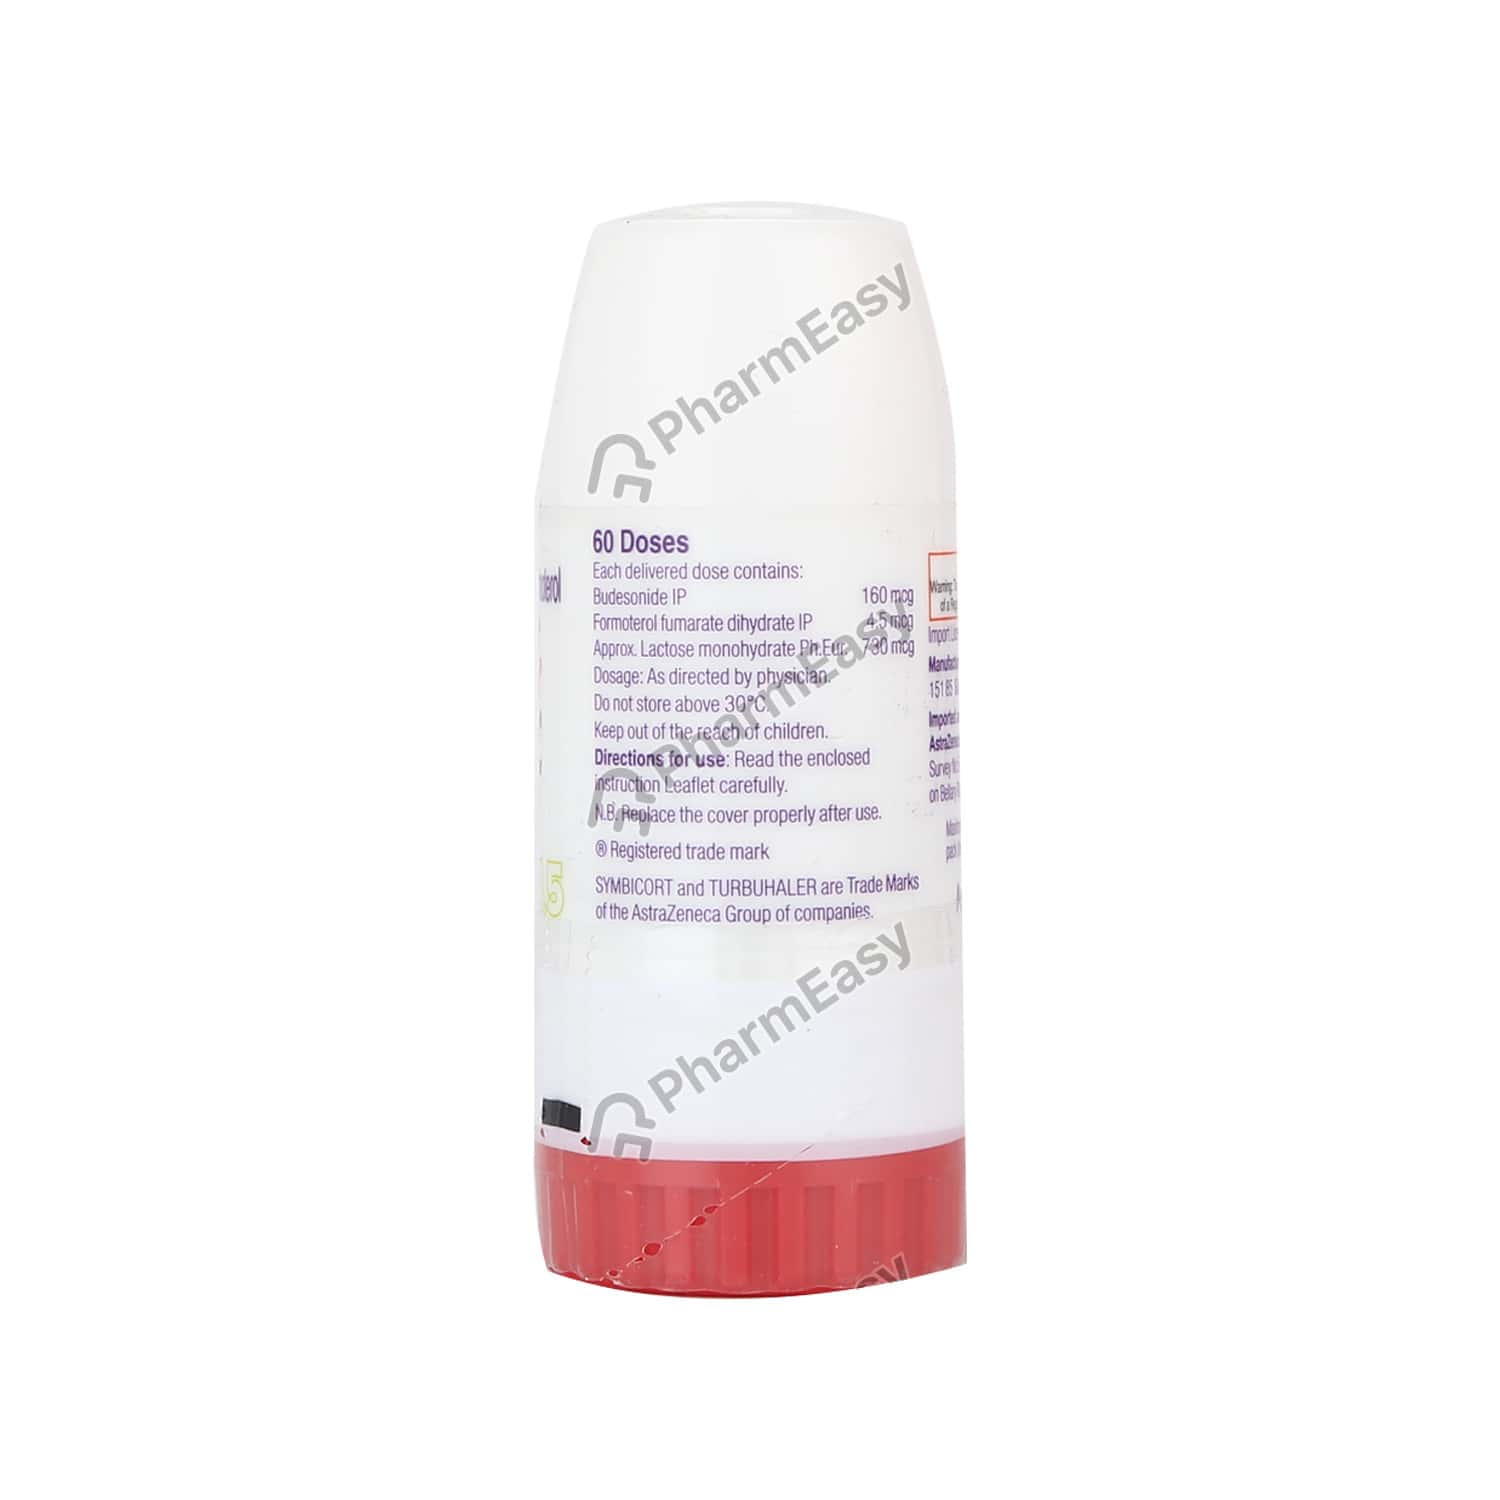 Symbicort Turbuhaler 160 4 5 Inhaler 60md Uses Side Effects Dosage Composition Price Pharmeasy